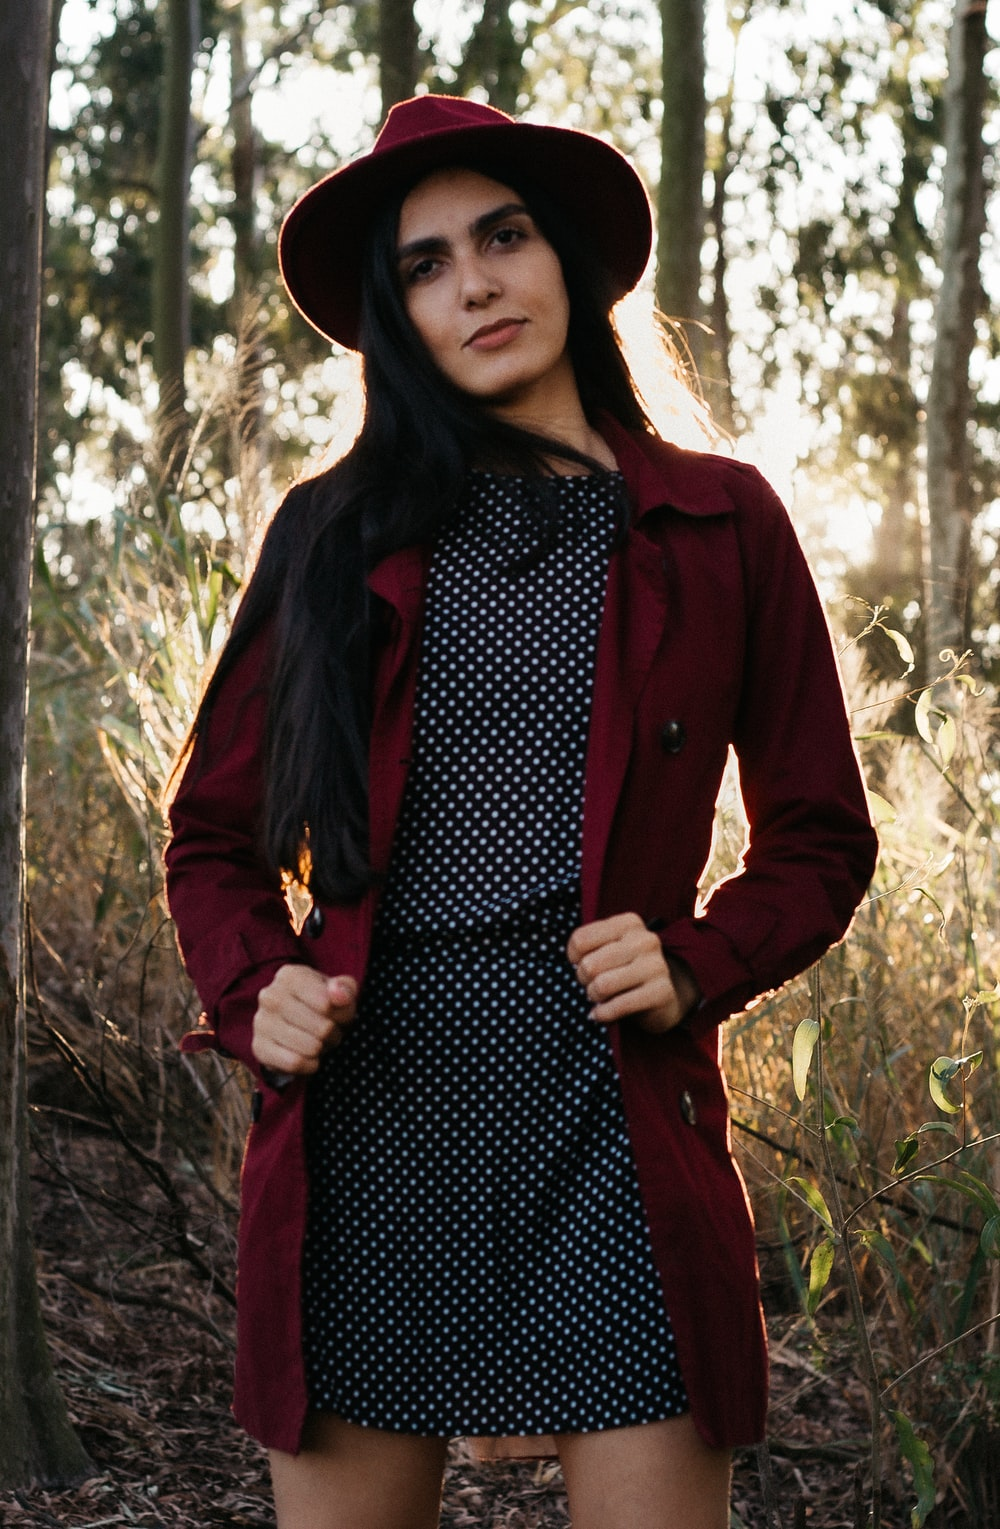 woman in red blazer and black and white polka dot dress